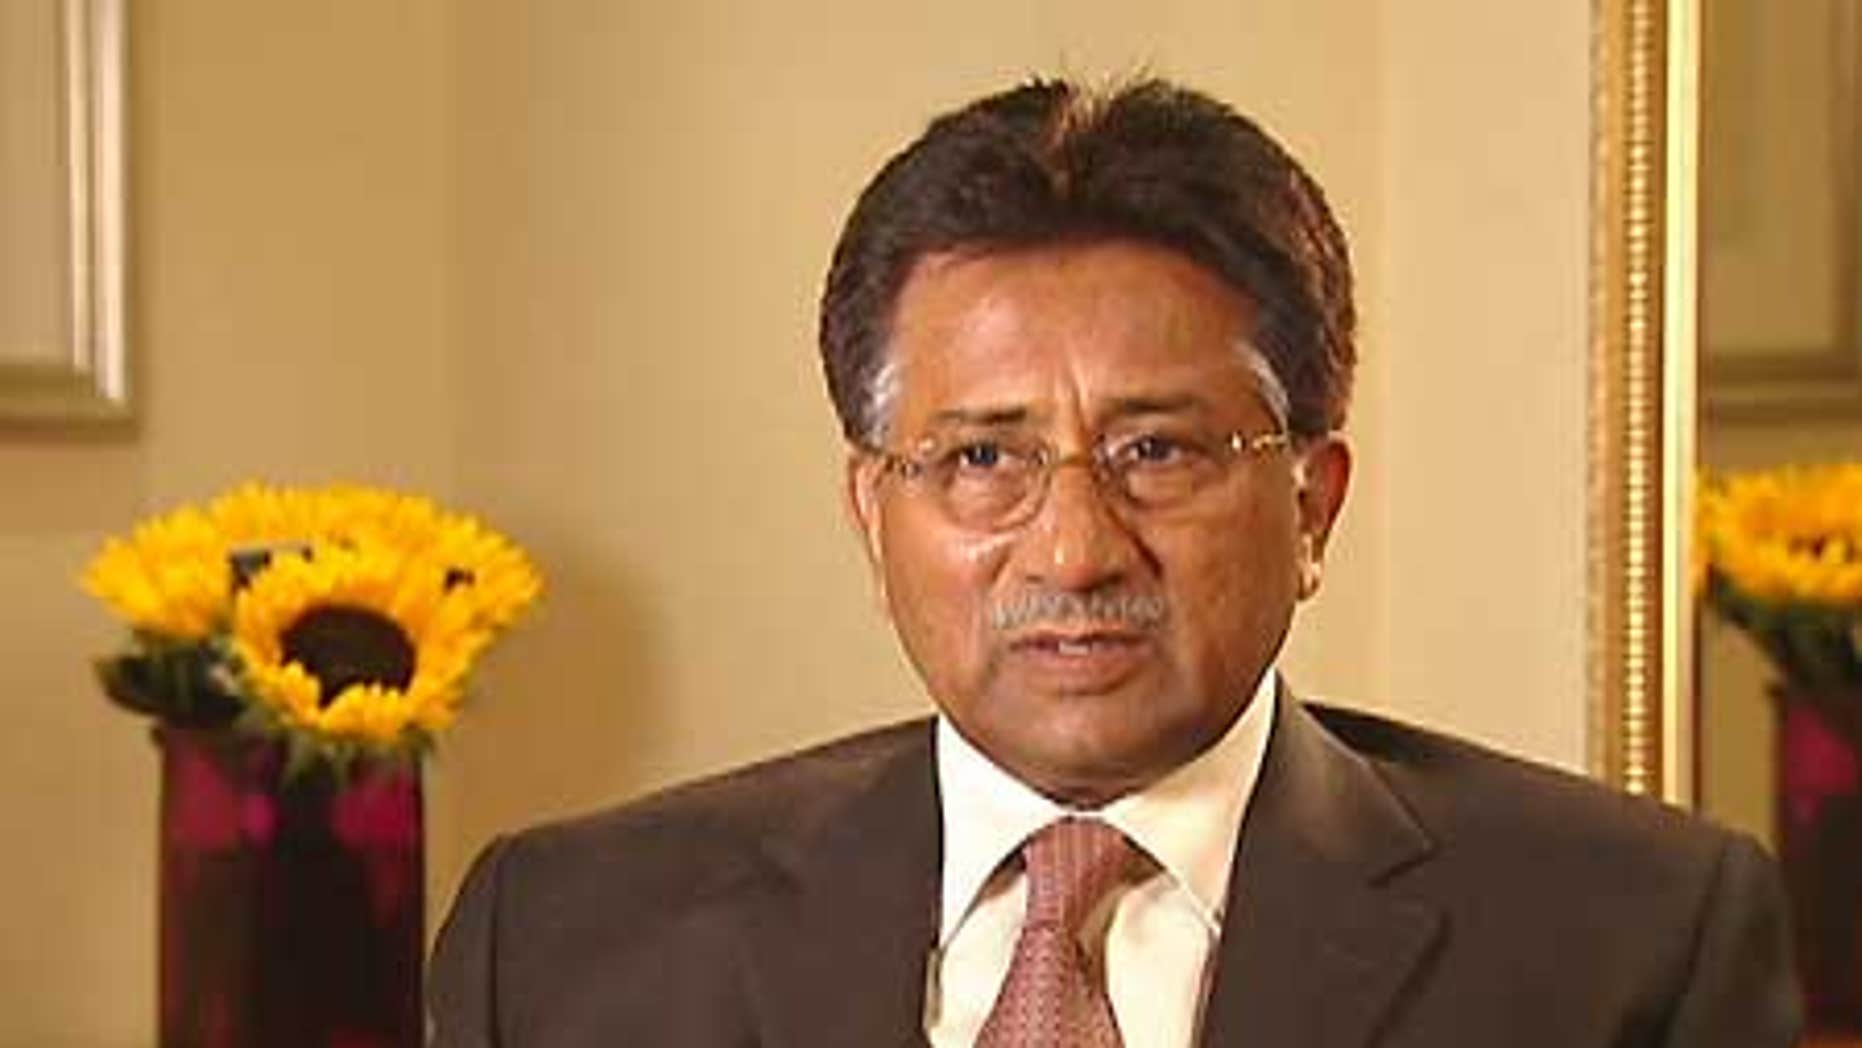 Former Pakistani President Pervez Musharraf believes his country should be given drone aircraft to target terrorists, he told FOX News in an exclusive interview.